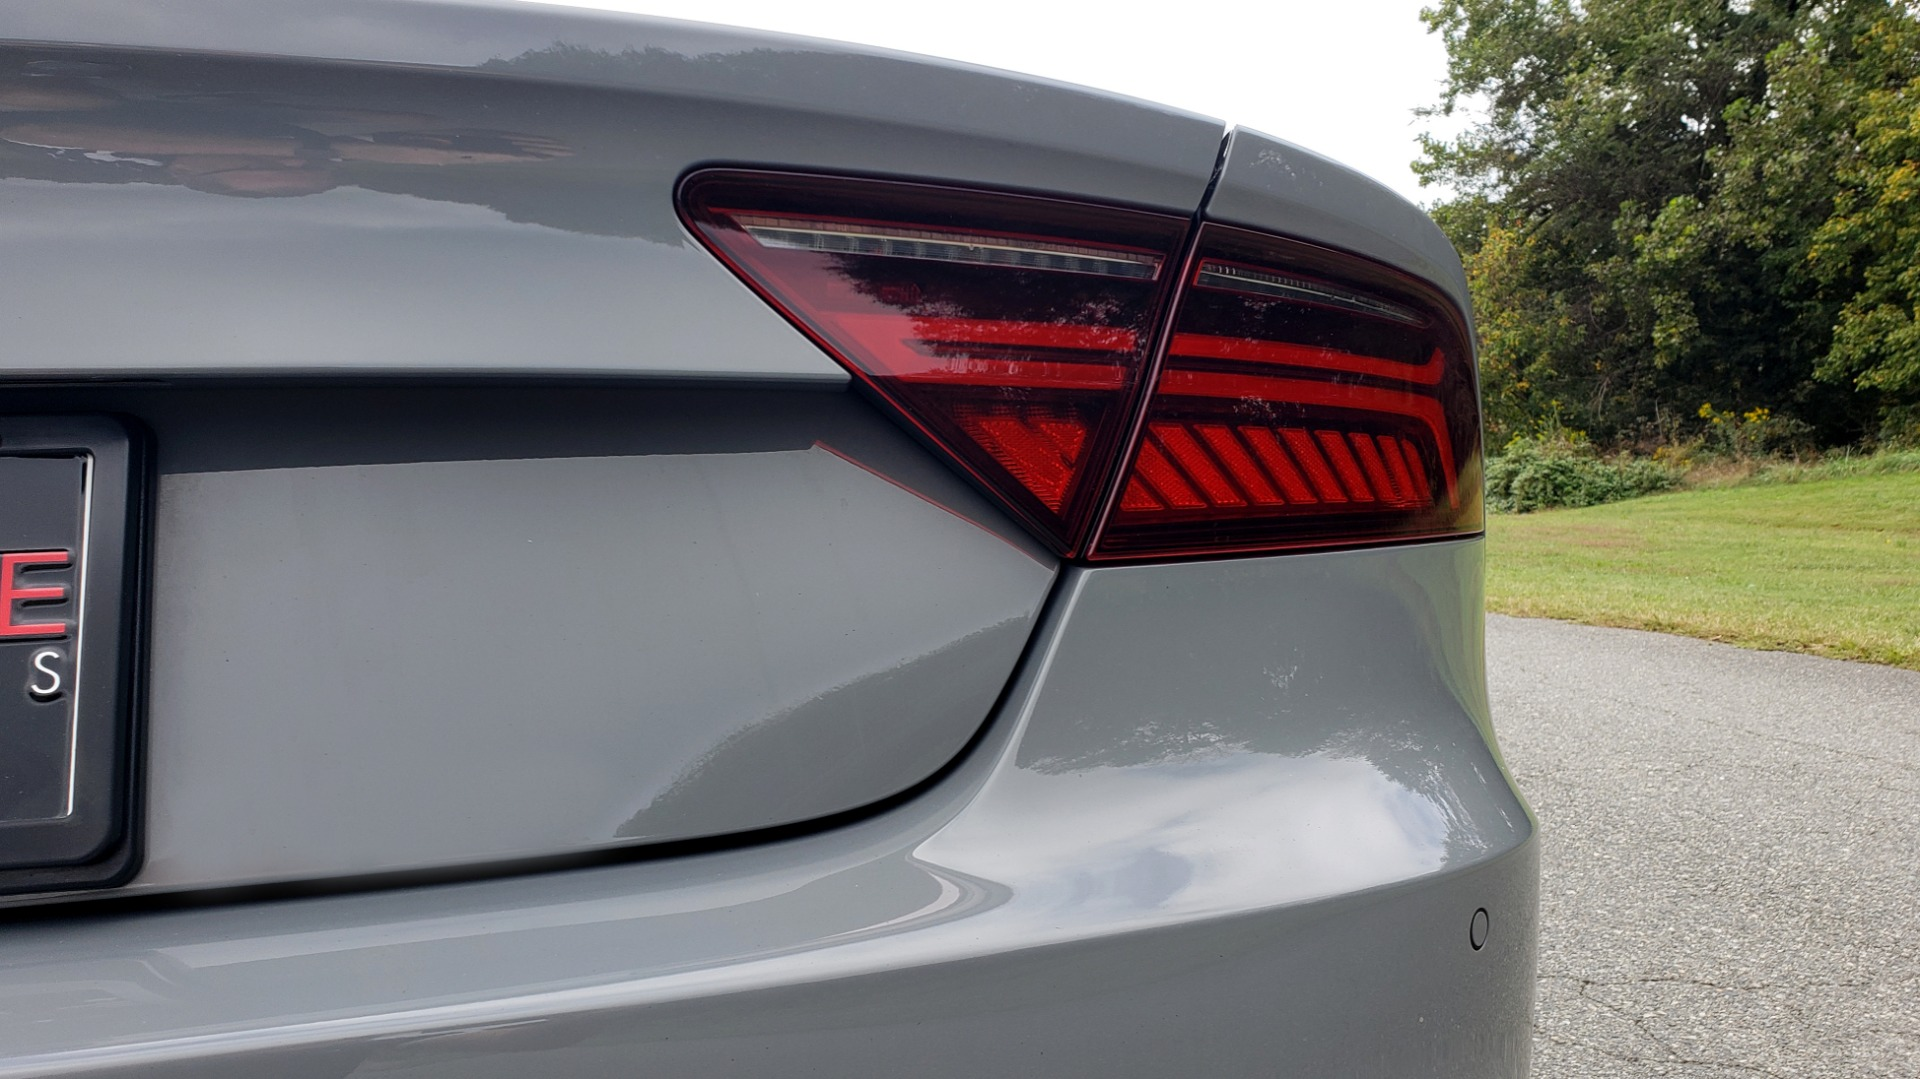 Used 2018 Audi RS 7 4.0T TIPTRONIC / CARBON OPTIC / DRVR ASST / NAV / REARVIEW / 750HP+ for sale Sold at Formula Imports in Charlotte NC 28227 18